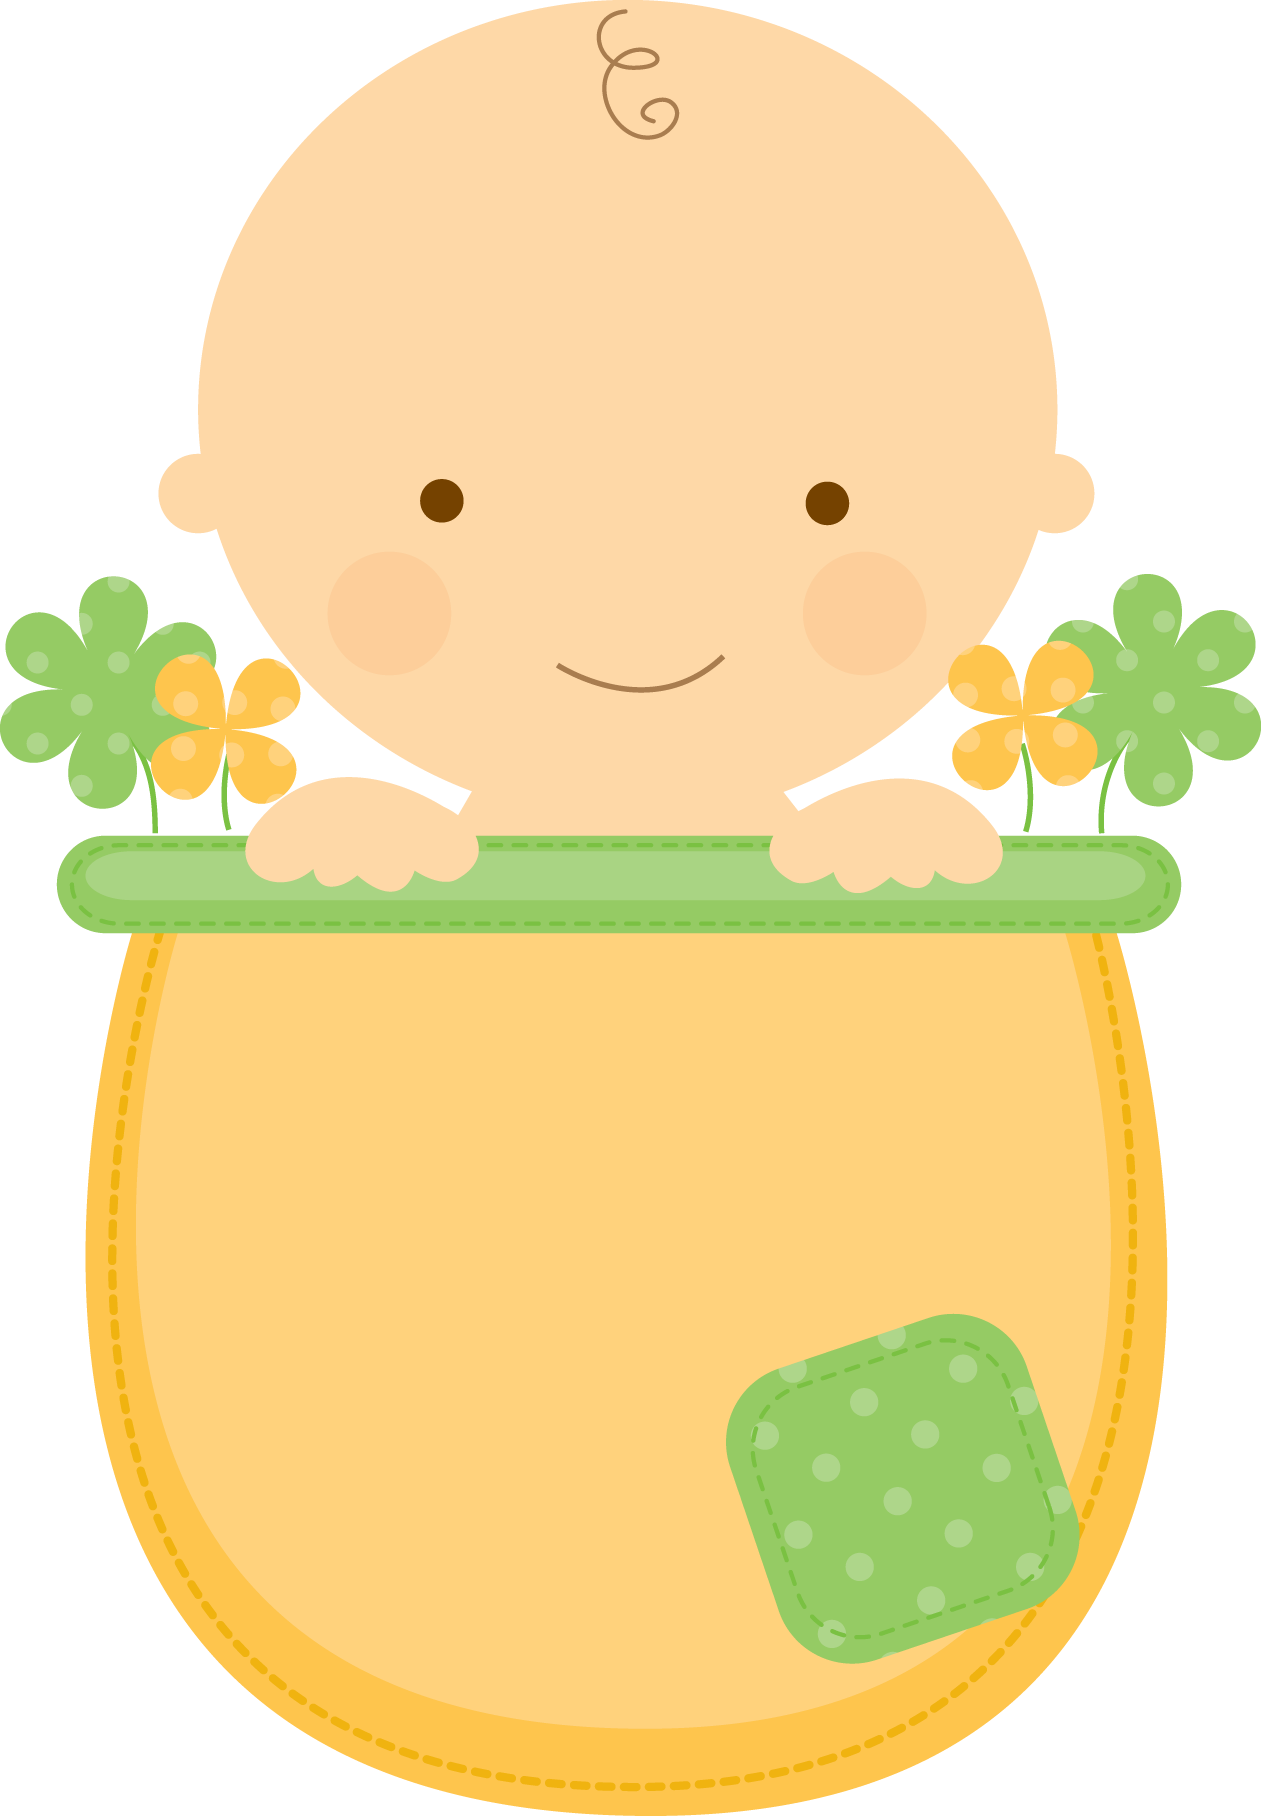 Cracked flower pot clipart png royalty free download Flowerpot Babies - ClipArt.BabyInFlowerpot_Boy_Green.png - Minus ... png royalty free download